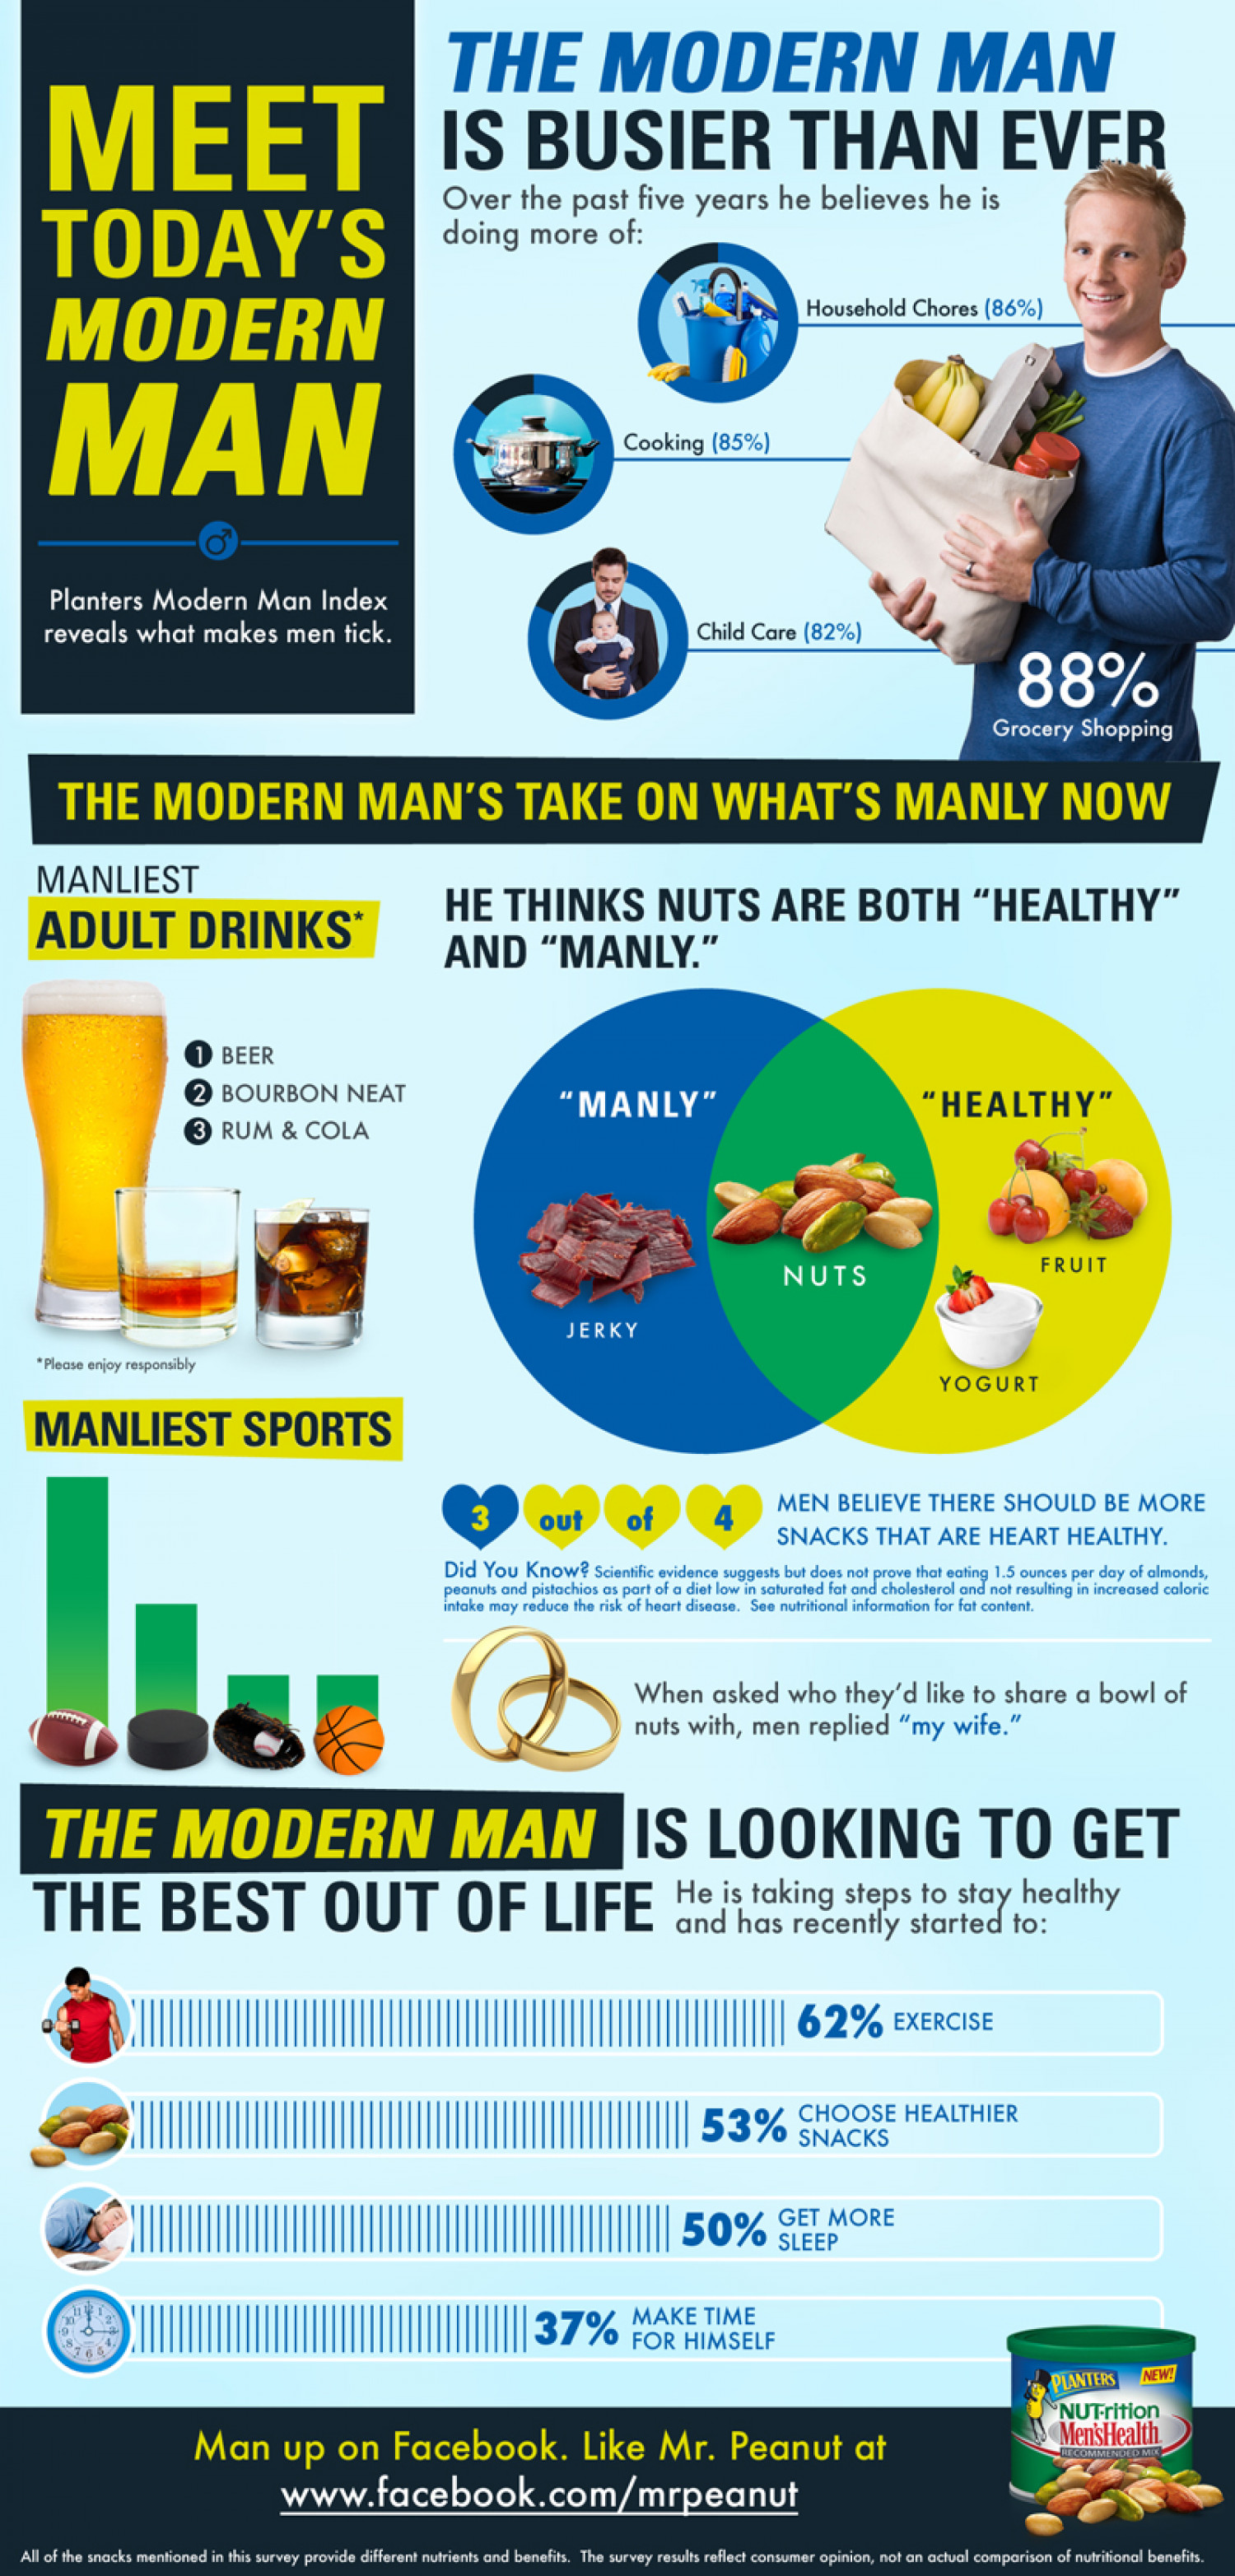 Meet Today's Modern Man Infographic